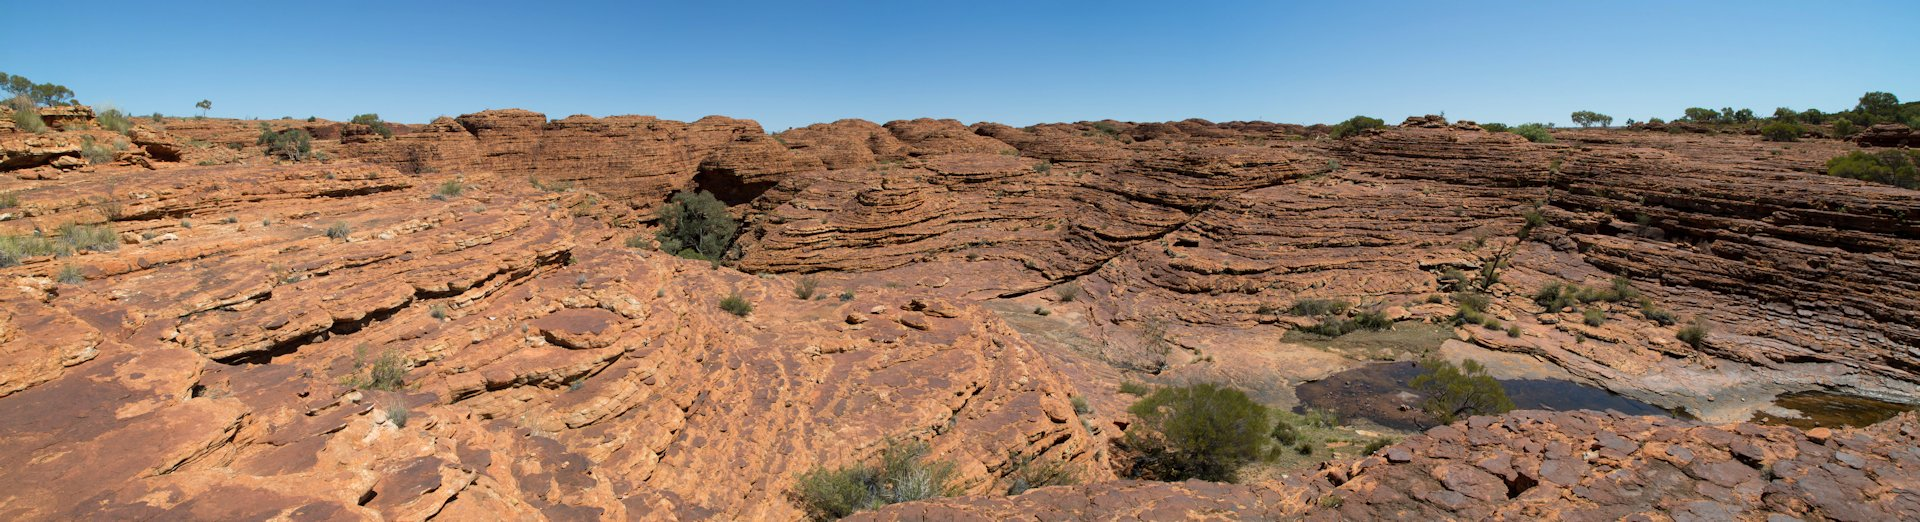 Eroded sandstone landscape, Kings Canyon